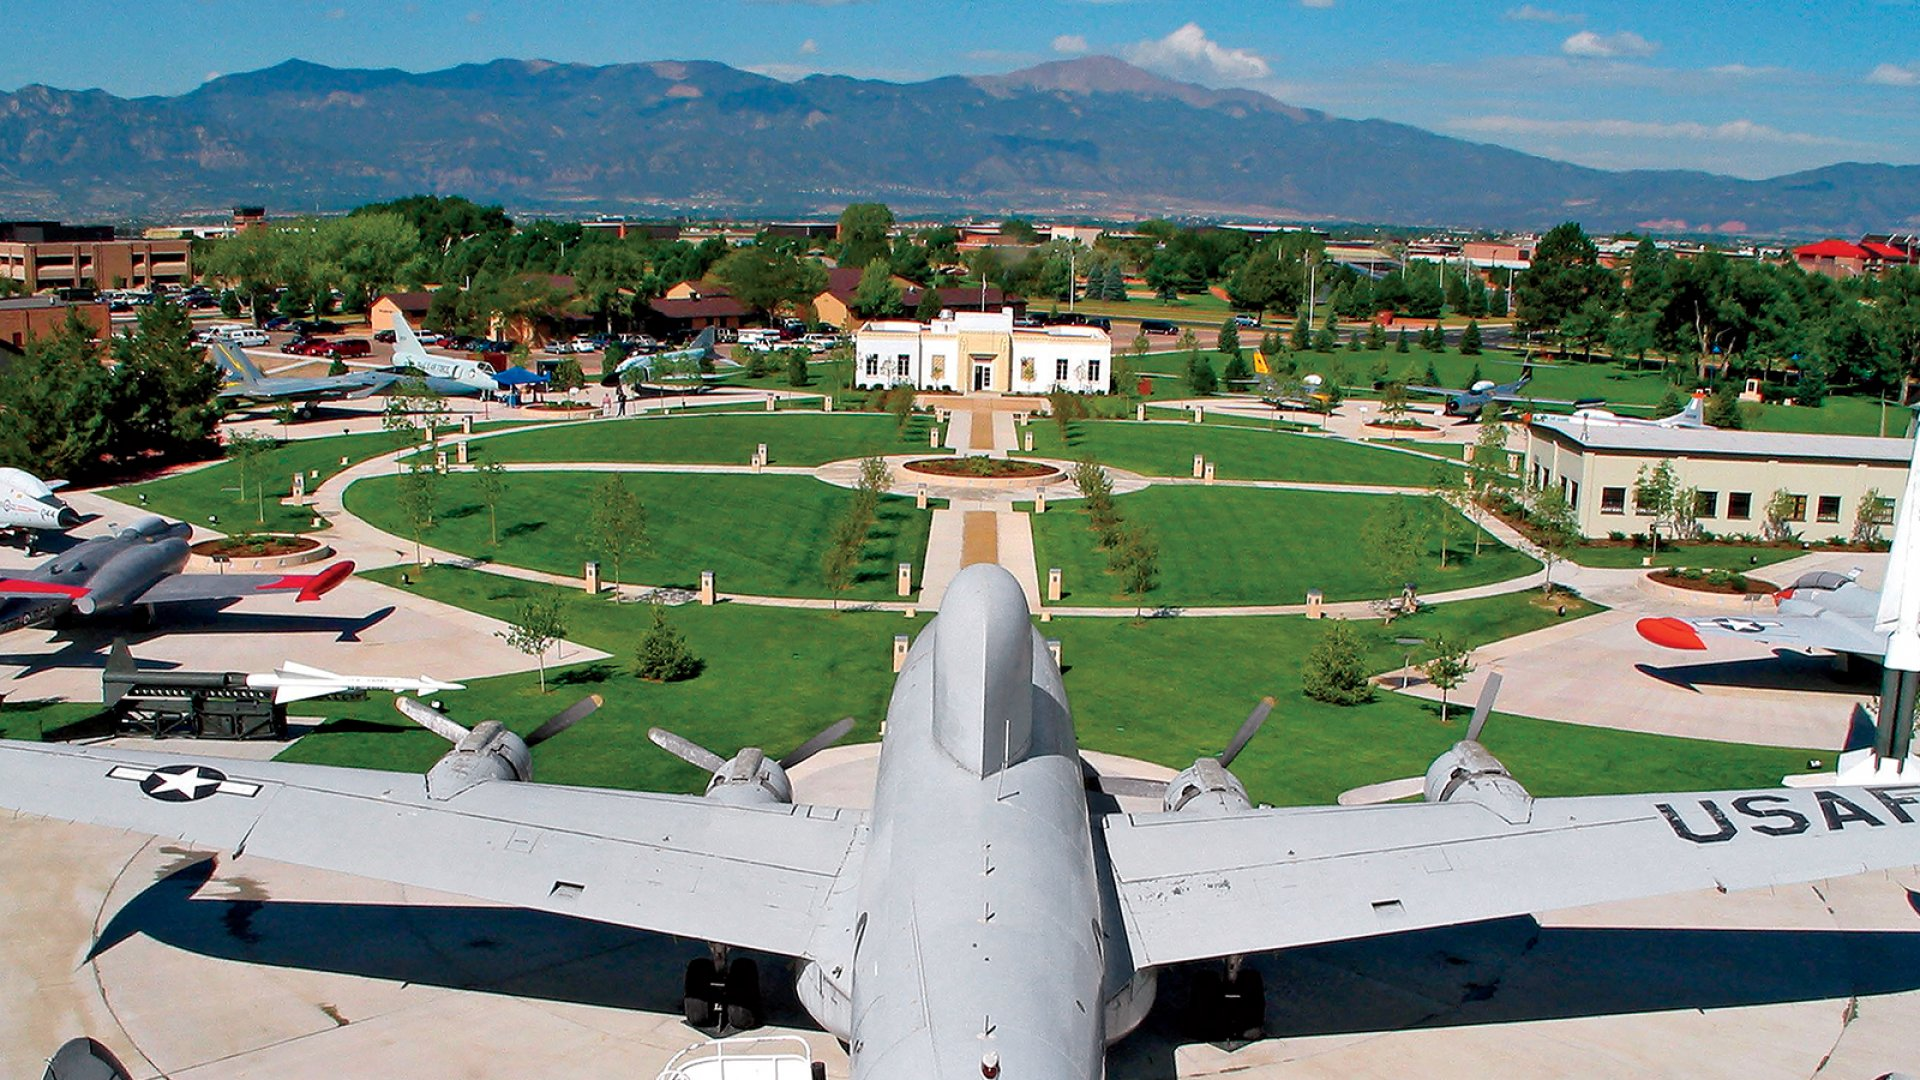 Colorado Springs is home to five military bases, including Peterson Air Force Base (pictured). In recent years, the Air Force has begun tapping the startup community for resources, and now runs its own accelerator, CyberWorx, at the Air Force Academy to prototype and commercialize technology faster.